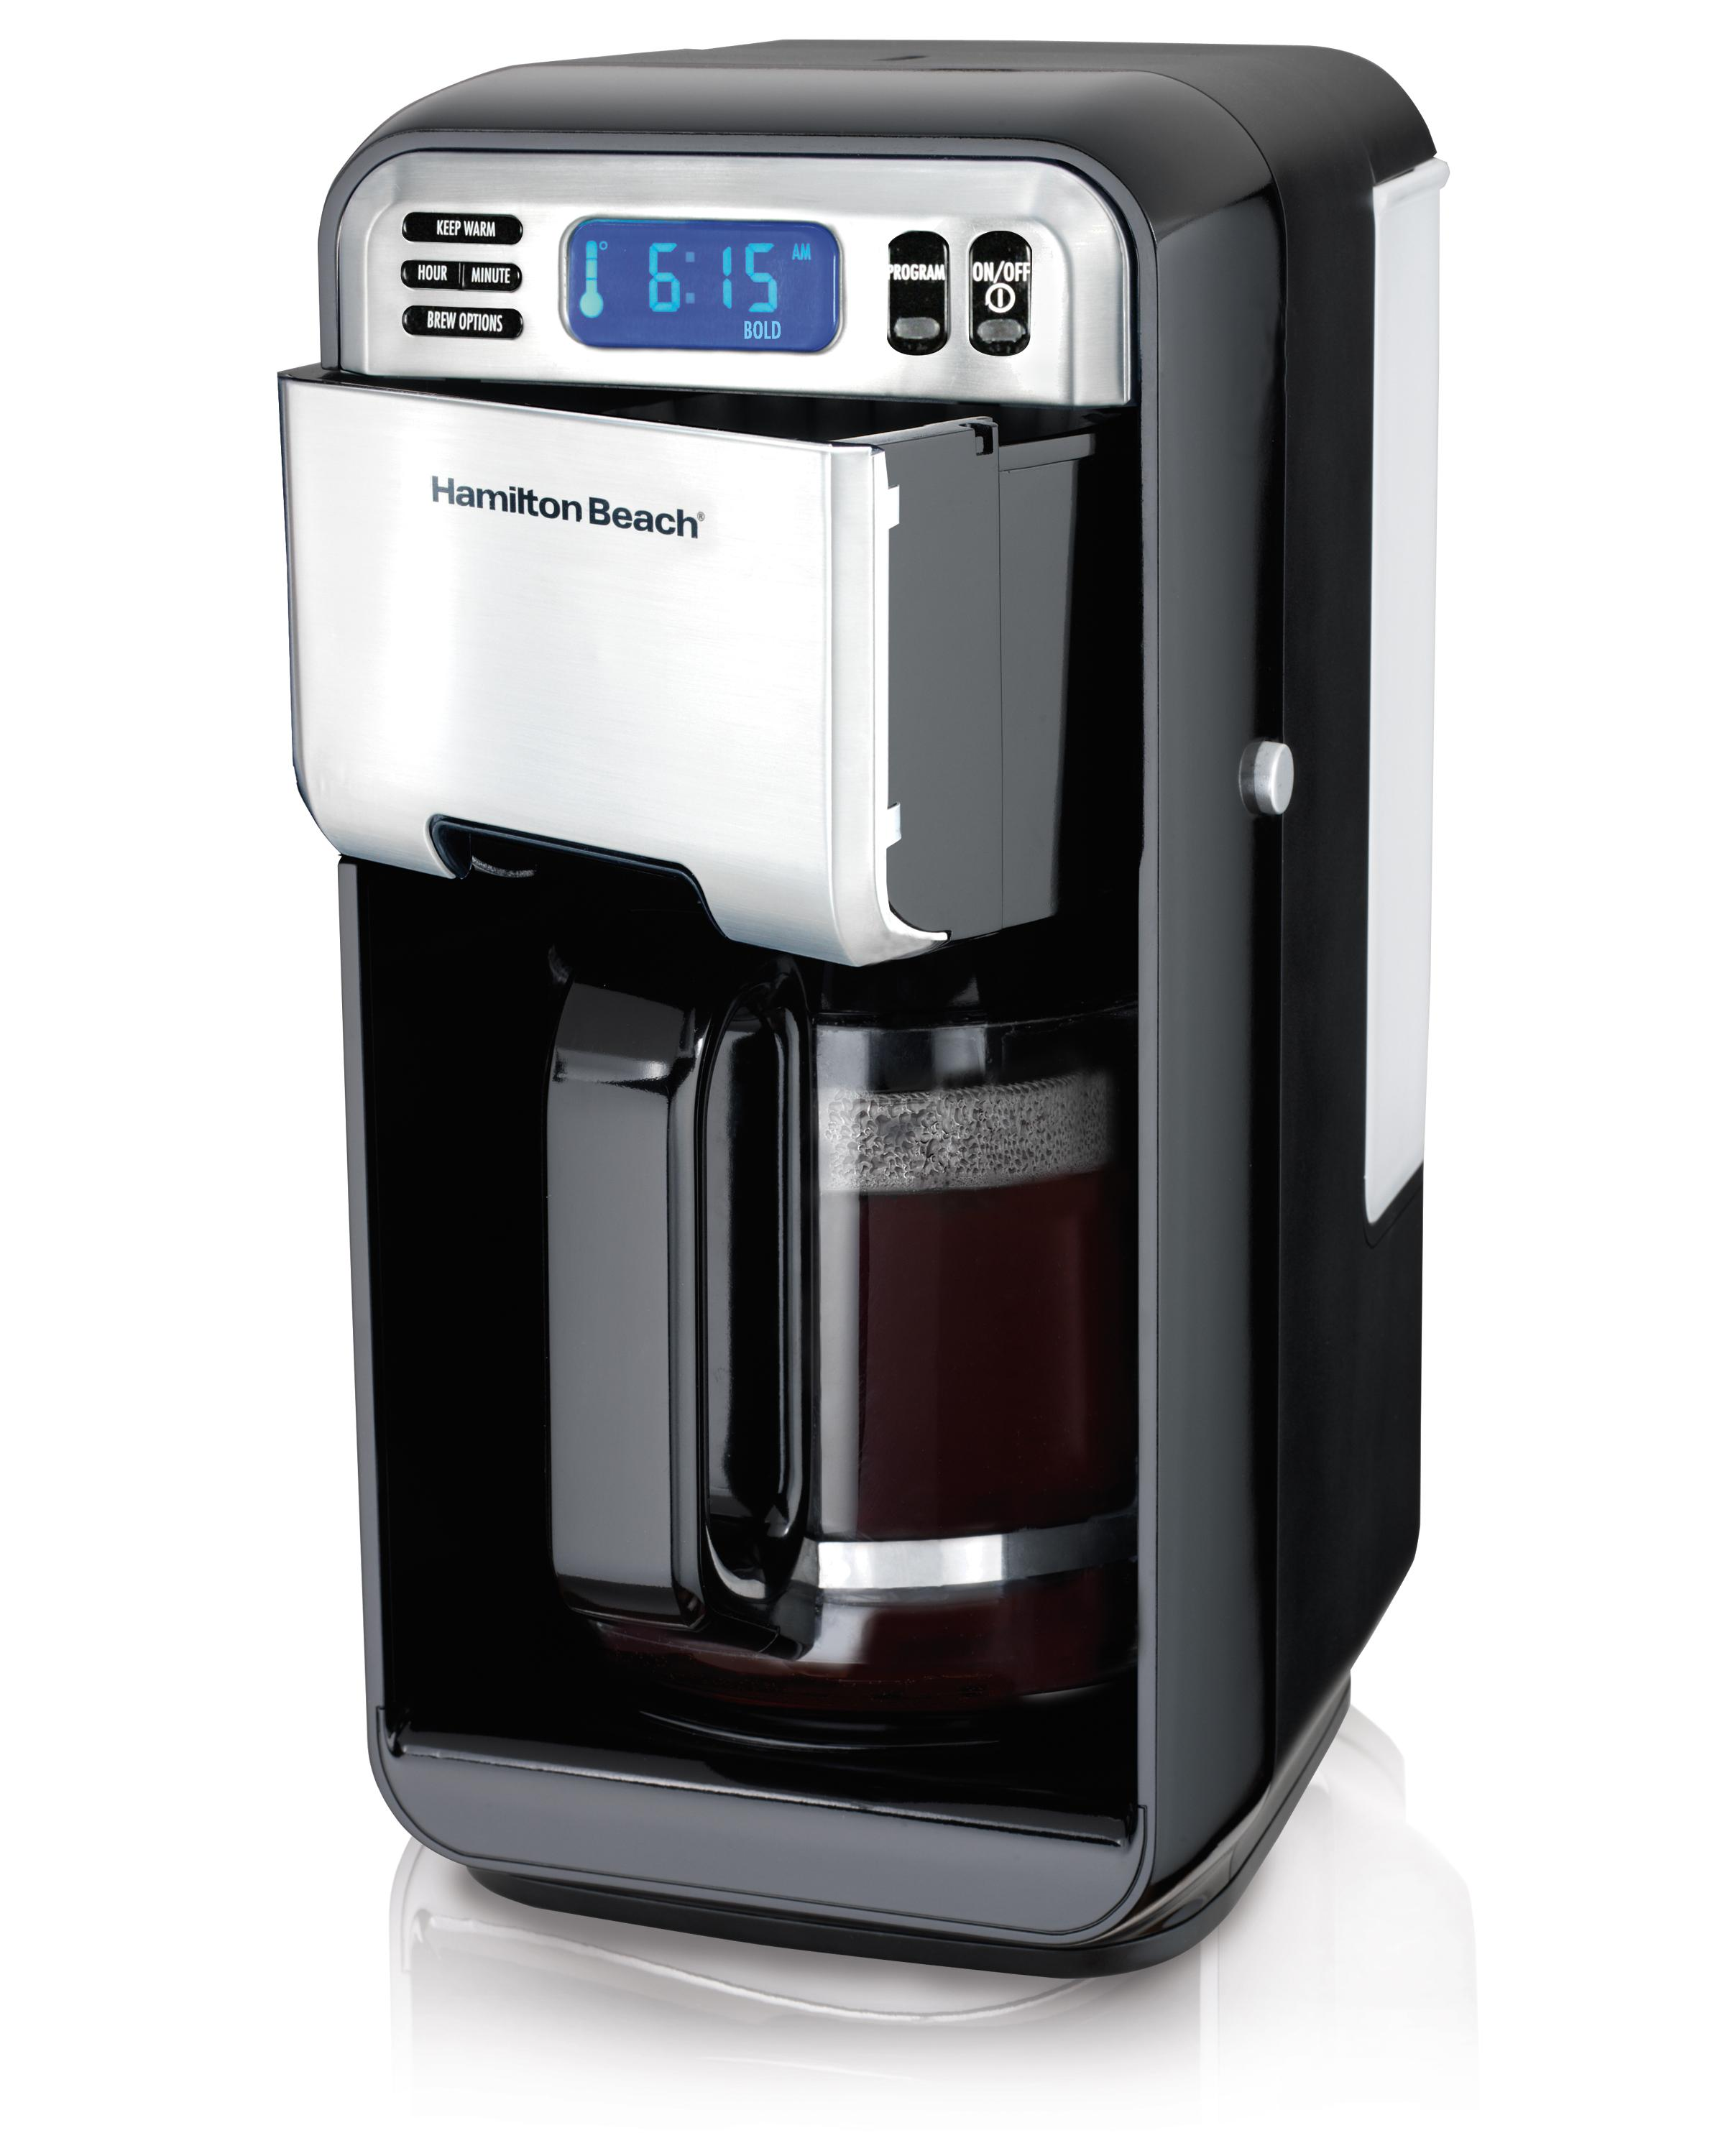 Coffee Maker For Large Groups : Amazon.com: Hamilton Beach 12-Cup Digital Coffee Maker, Stainless Steel (46201): Drip ...